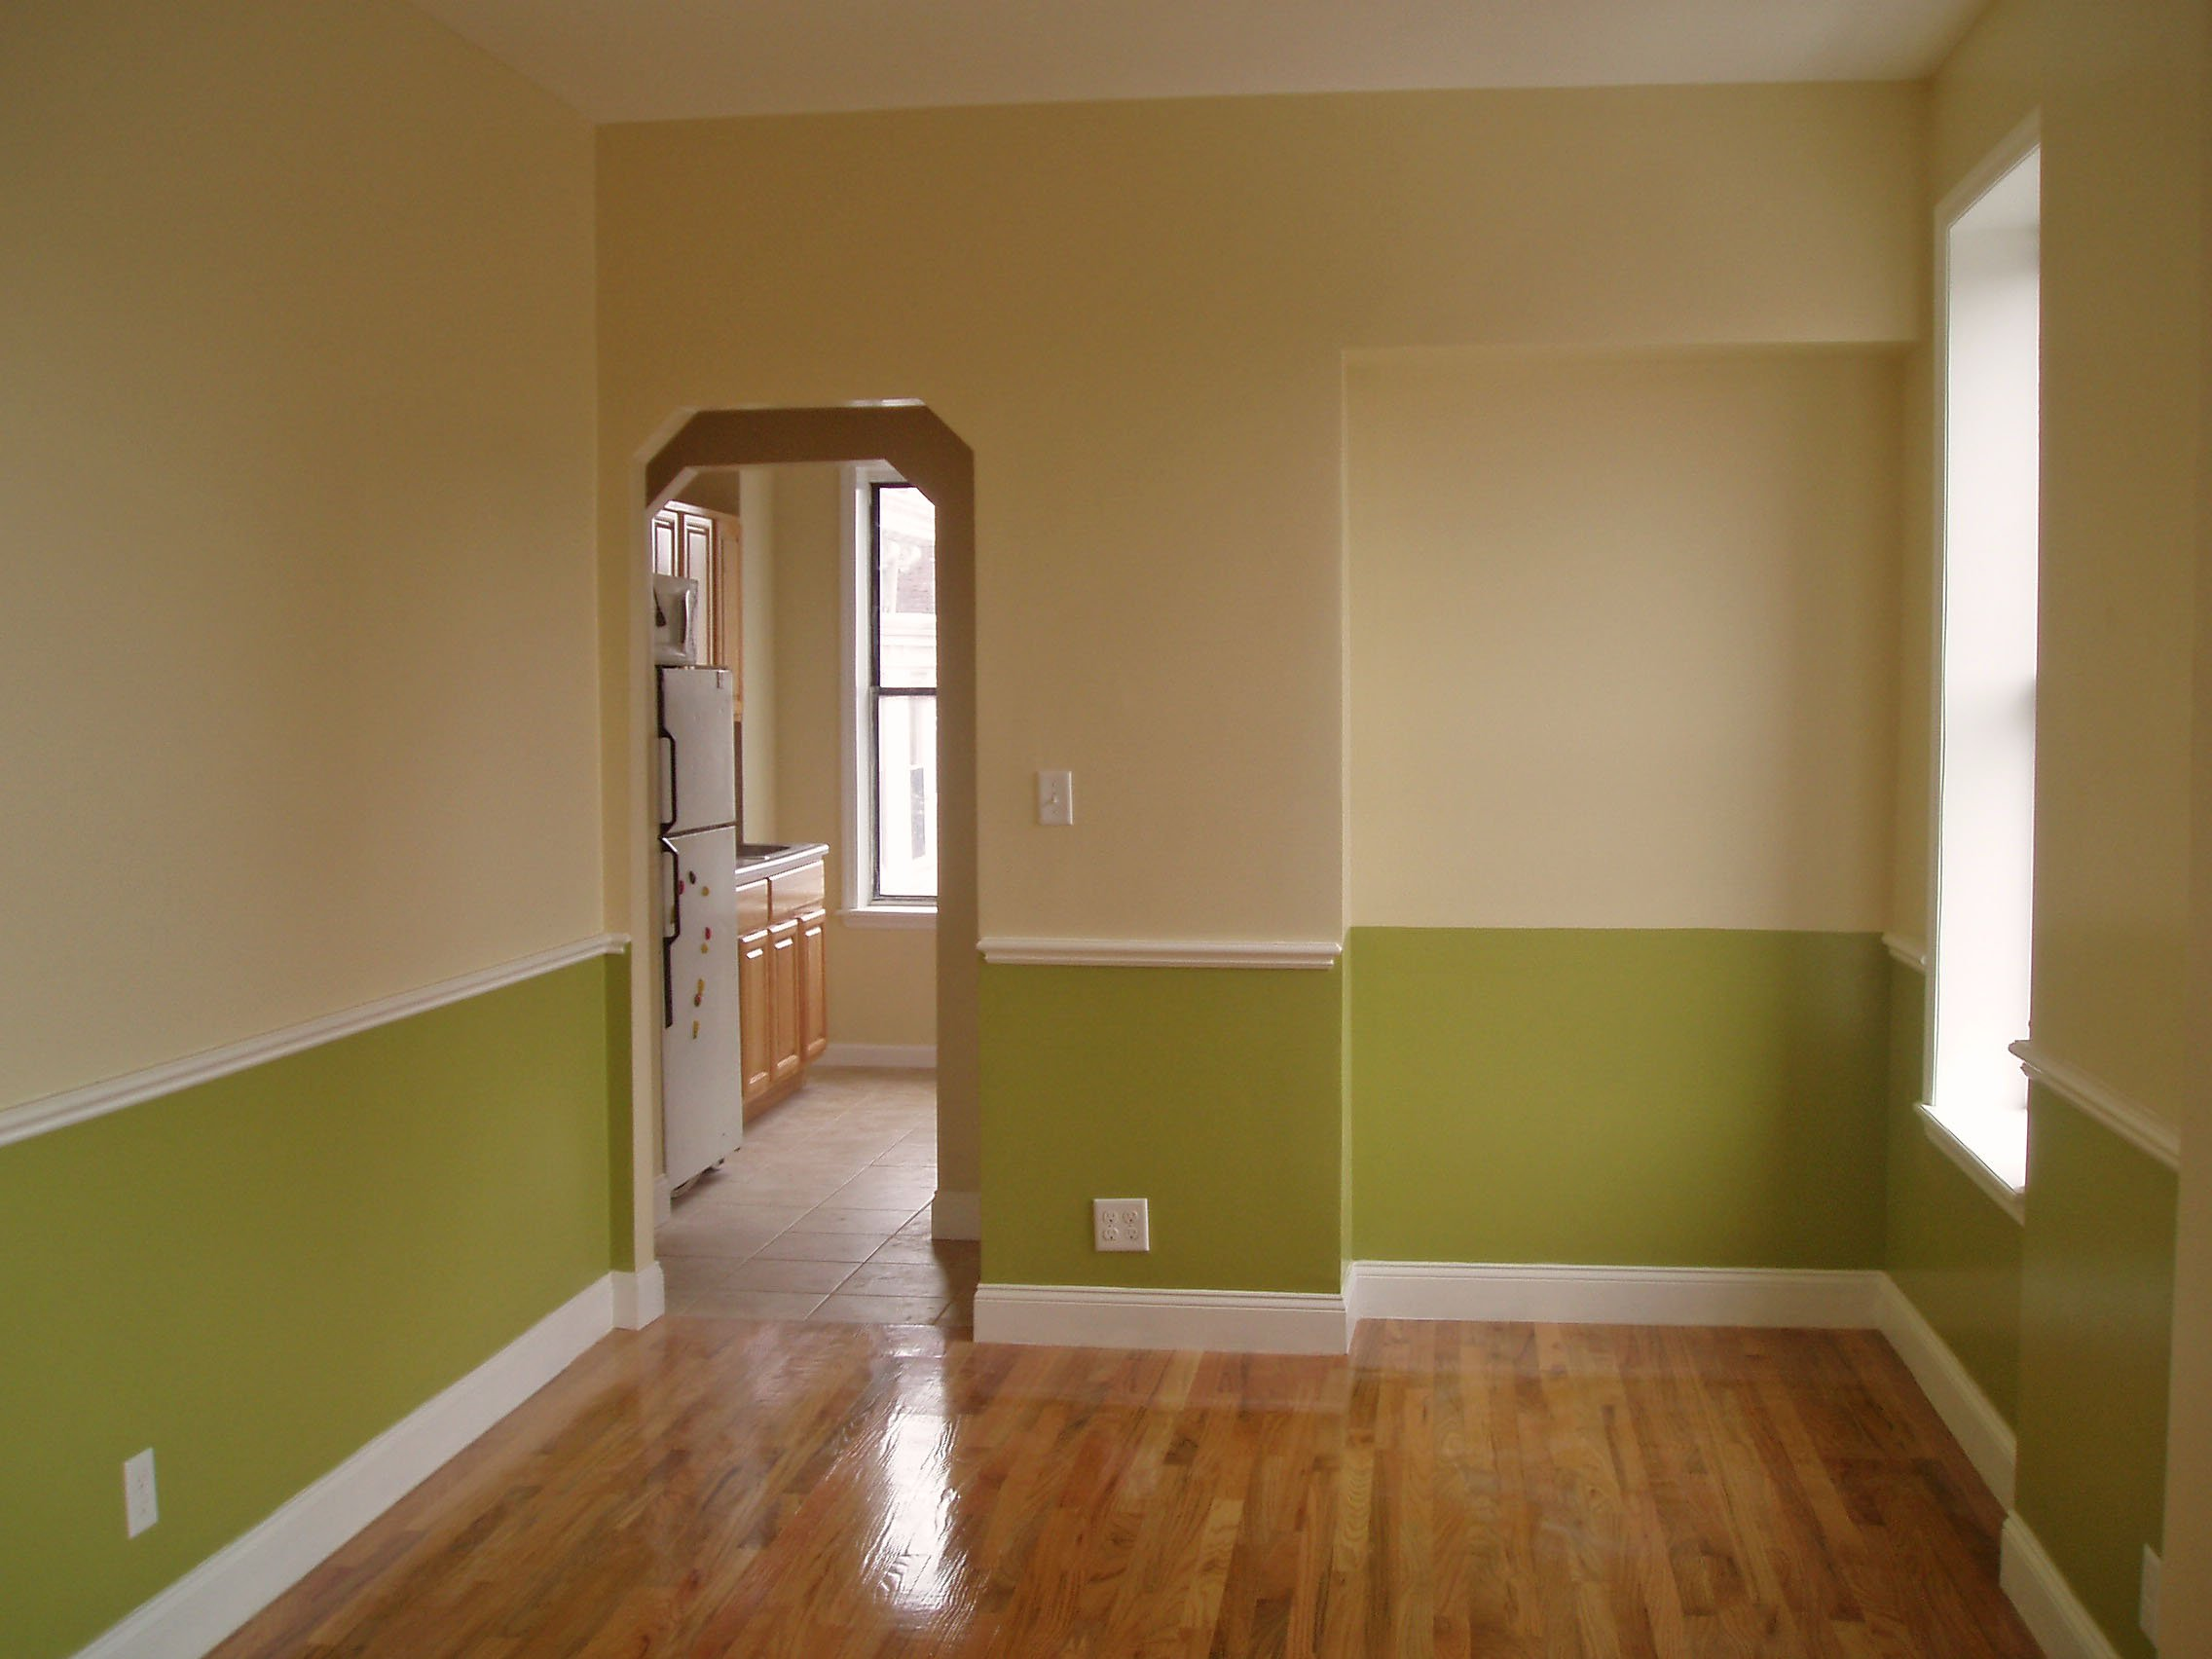 Crown heights 2 bedroom apartment for rent brooklyn crg3003 for Two bedroom apartments in brooklyn ny